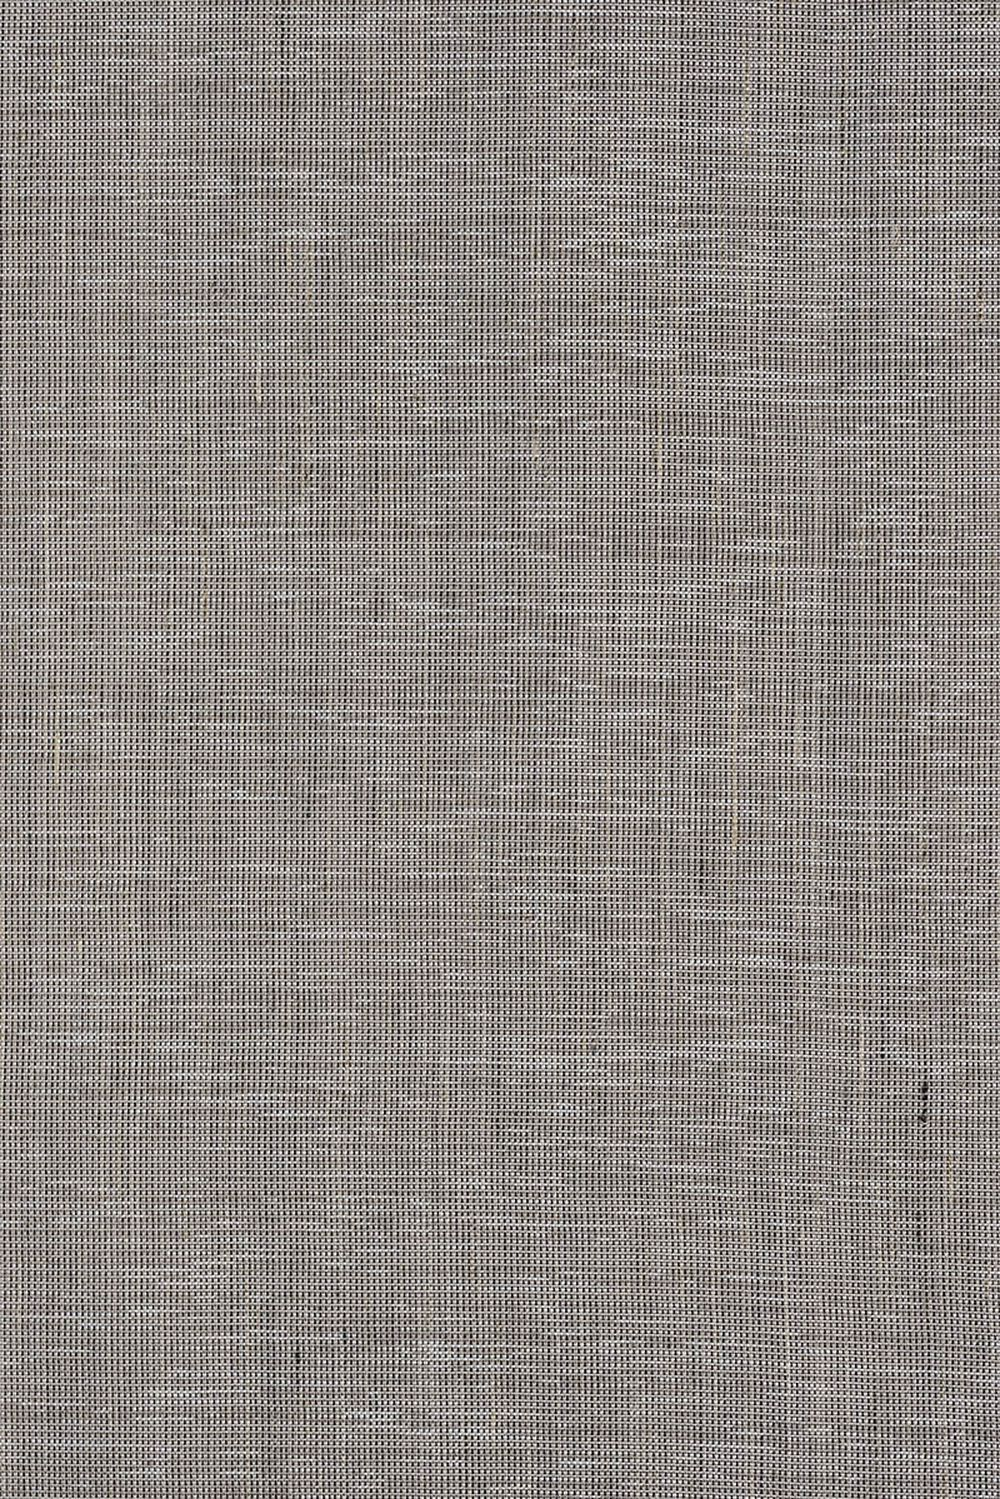 Photo of the fabric Antipodes Granite swatch by James Dunlop. Use for Sheer Curtains. Style of Plain, Sheer